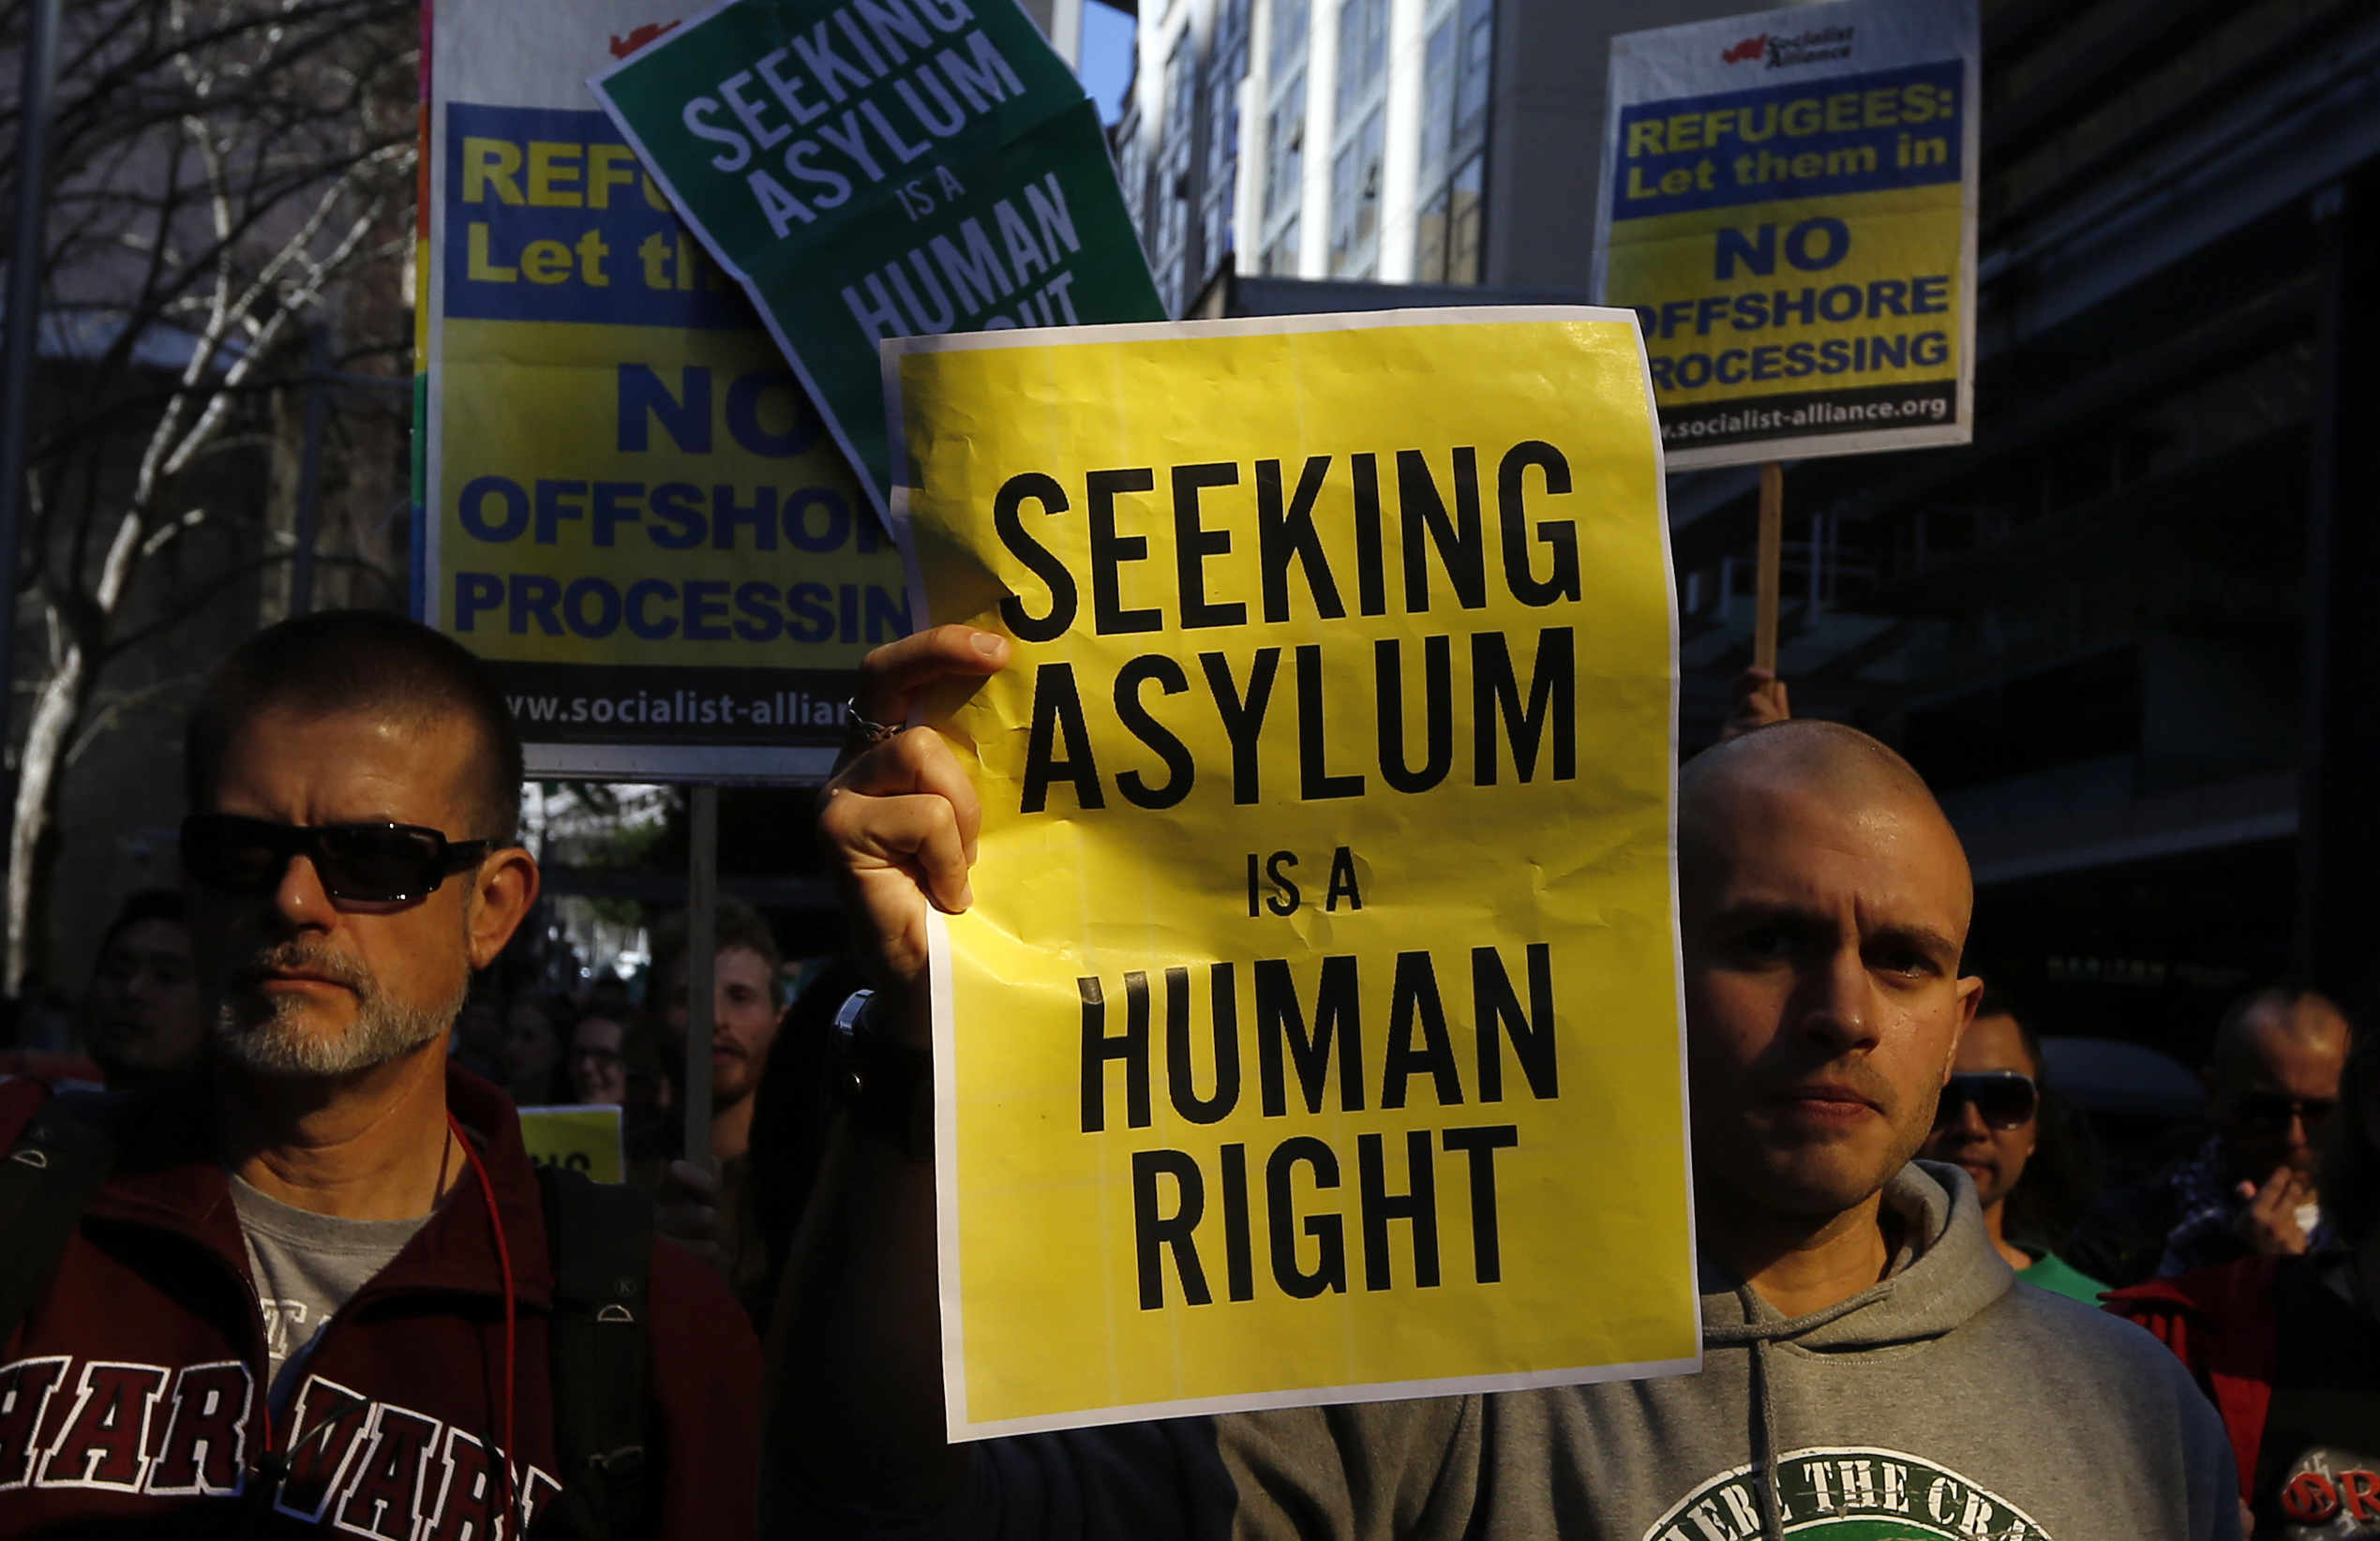 A man holds a poster during a rally in support of asylum seekers in central Sydney July 20, 2013